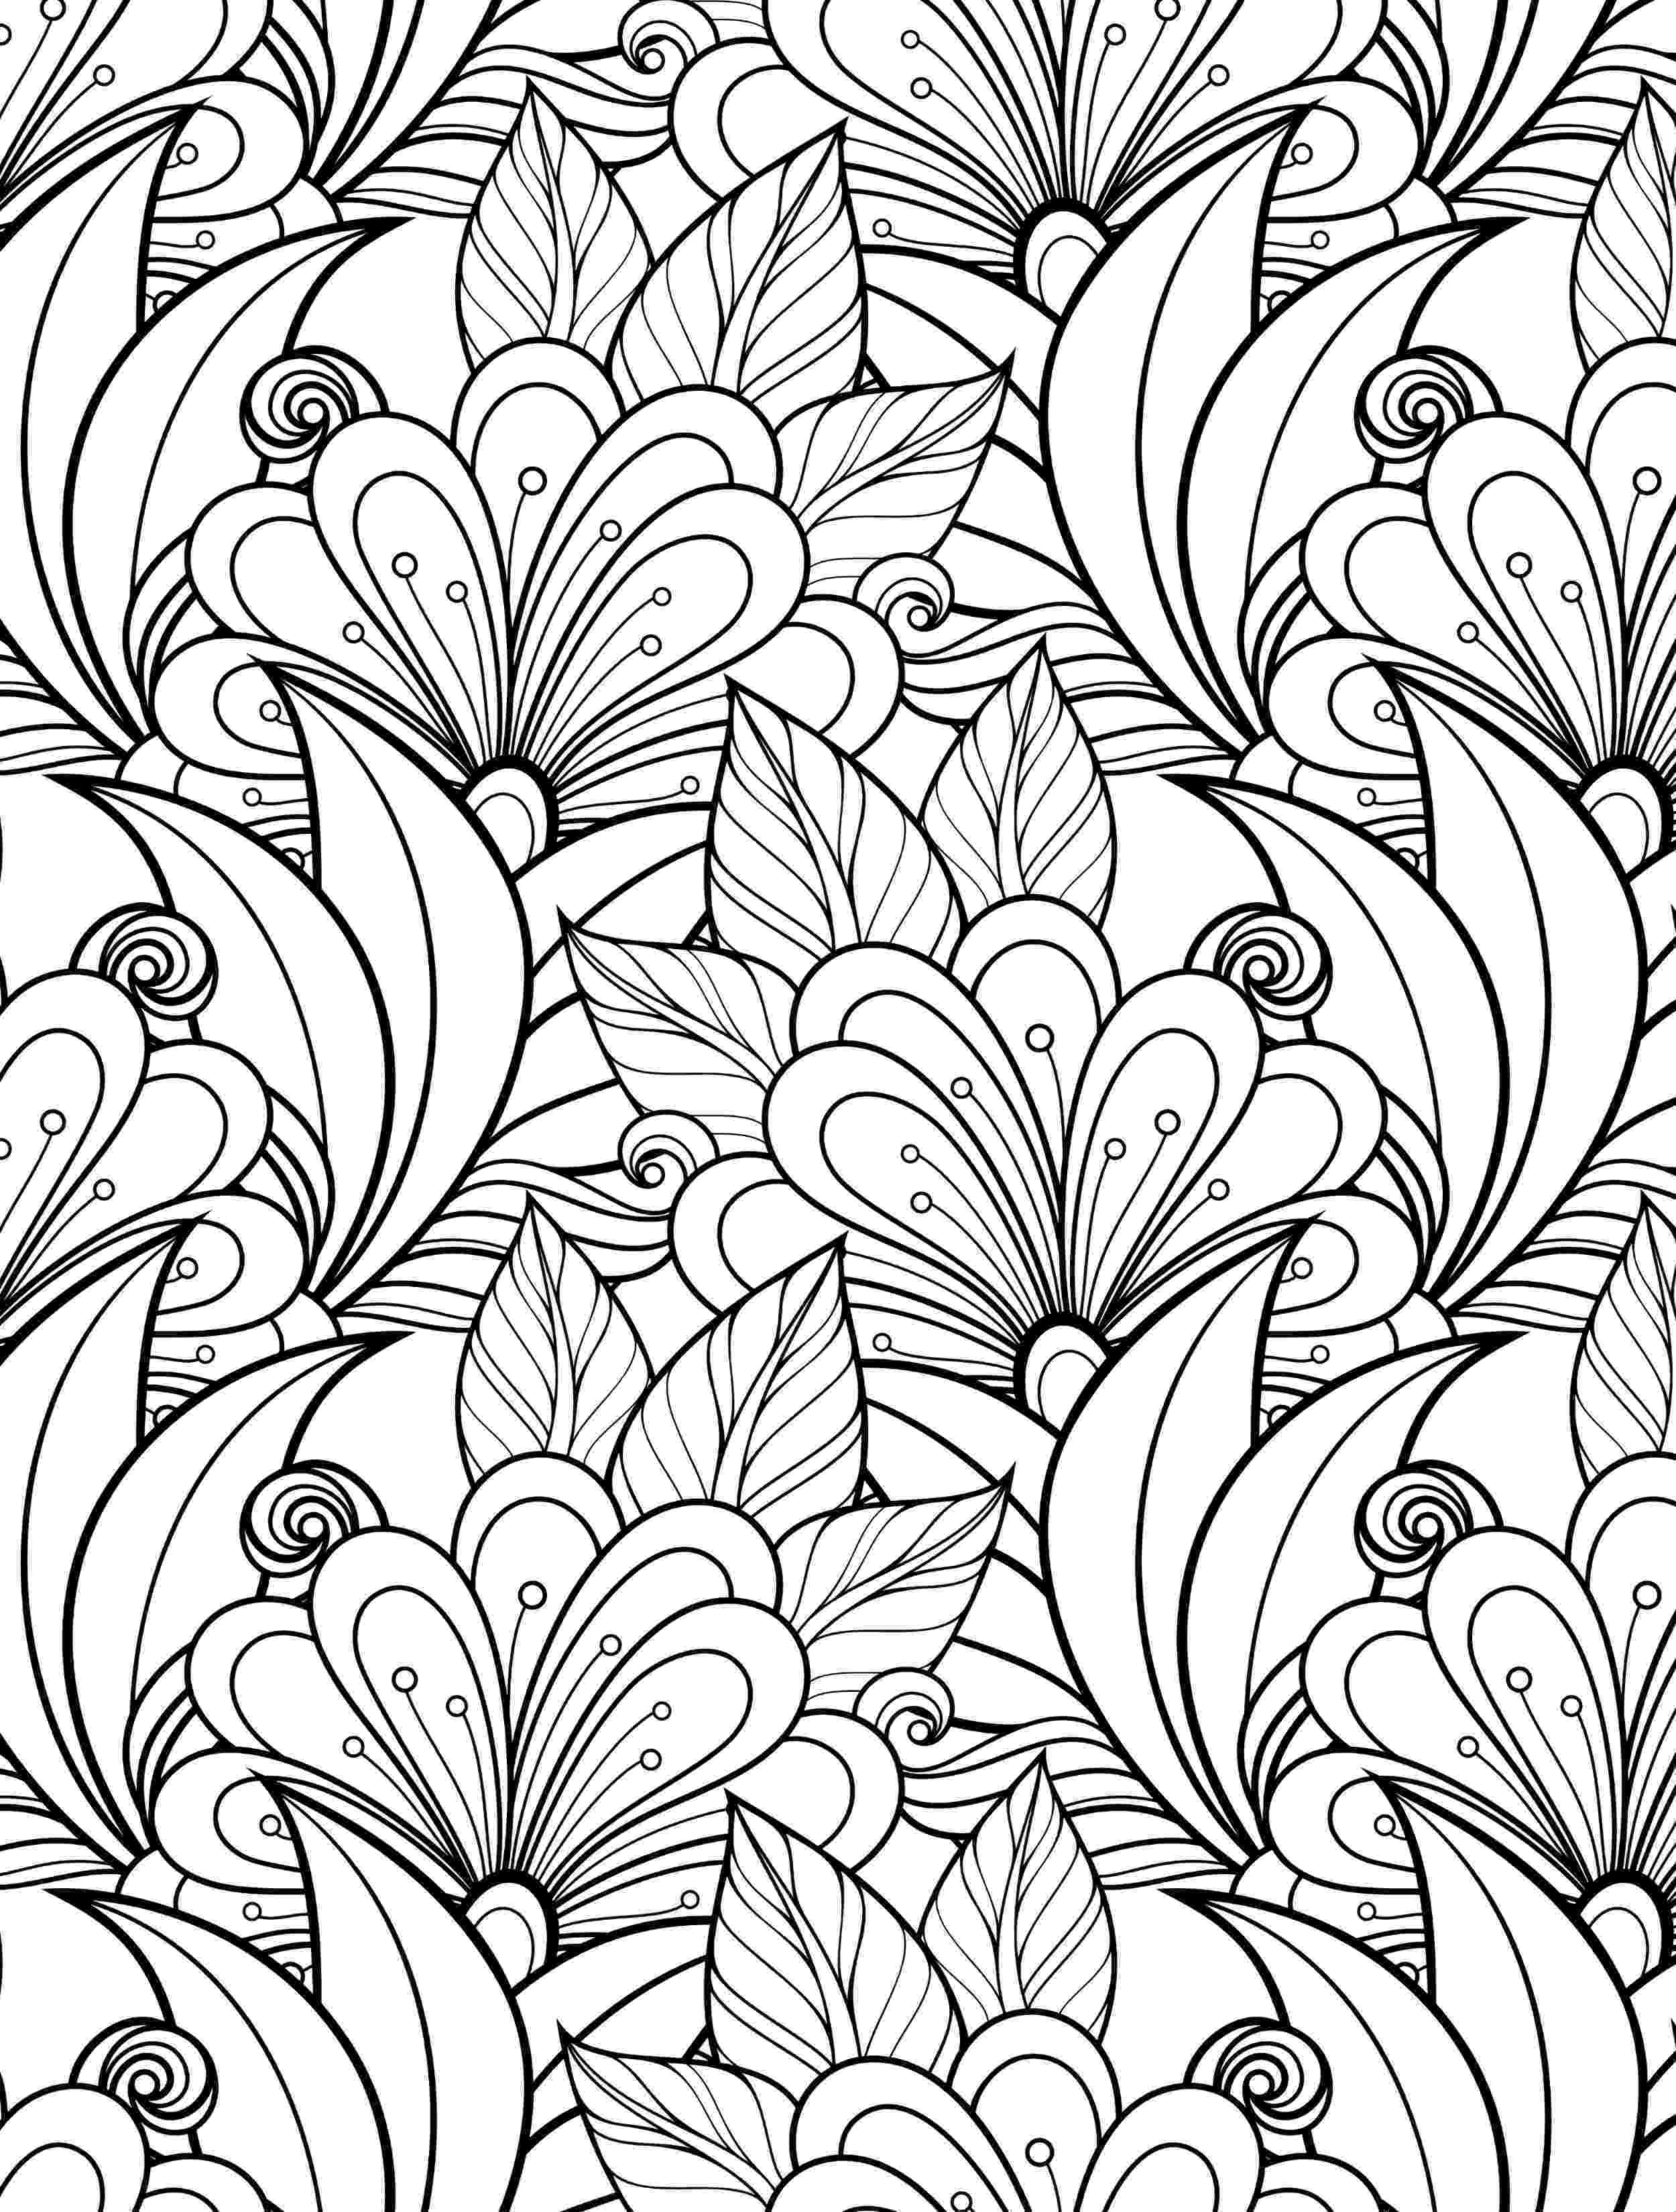 pattern coloring pages for adults free coloring page coloring adult zen anti stress to coloring for pattern adults pages